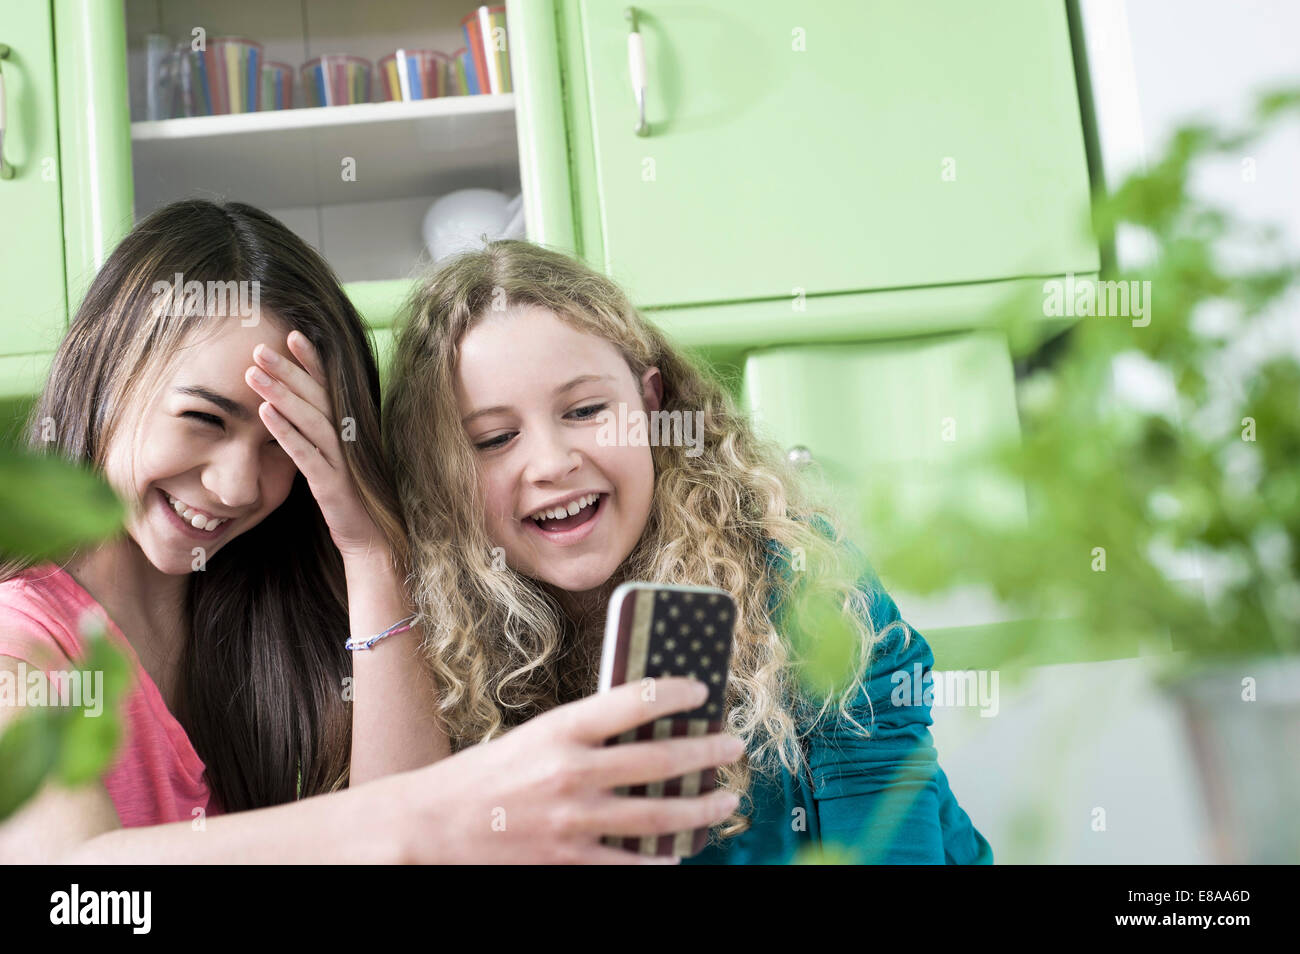 Girls in kitchen with smart phone - Stock Image